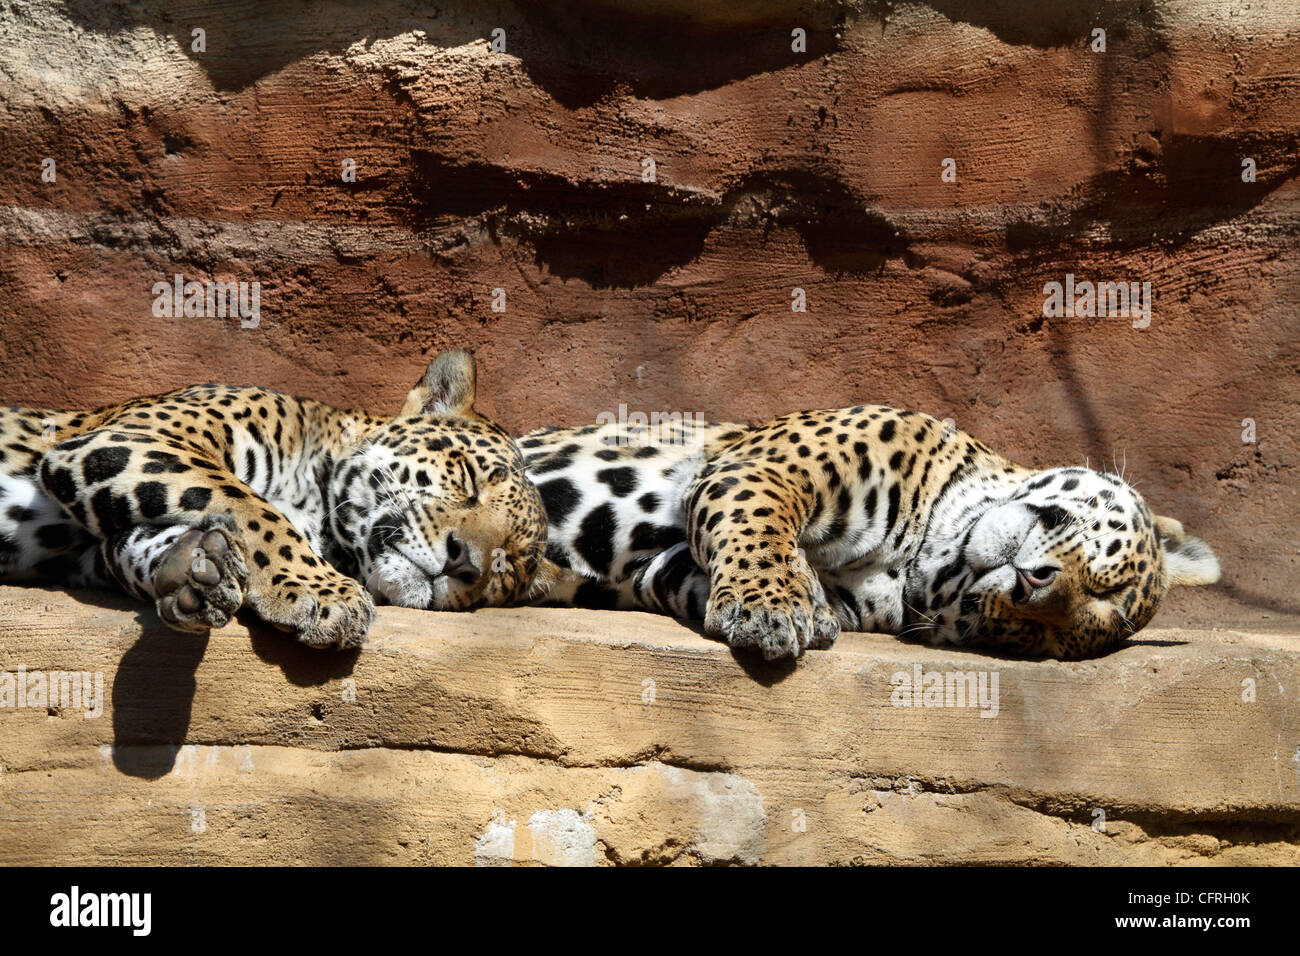 A pair of sleeping Jaguars, Panthera onca, laying on an overhang. Turtleback Zoo, West Orange, New Jersey. - Stock Image